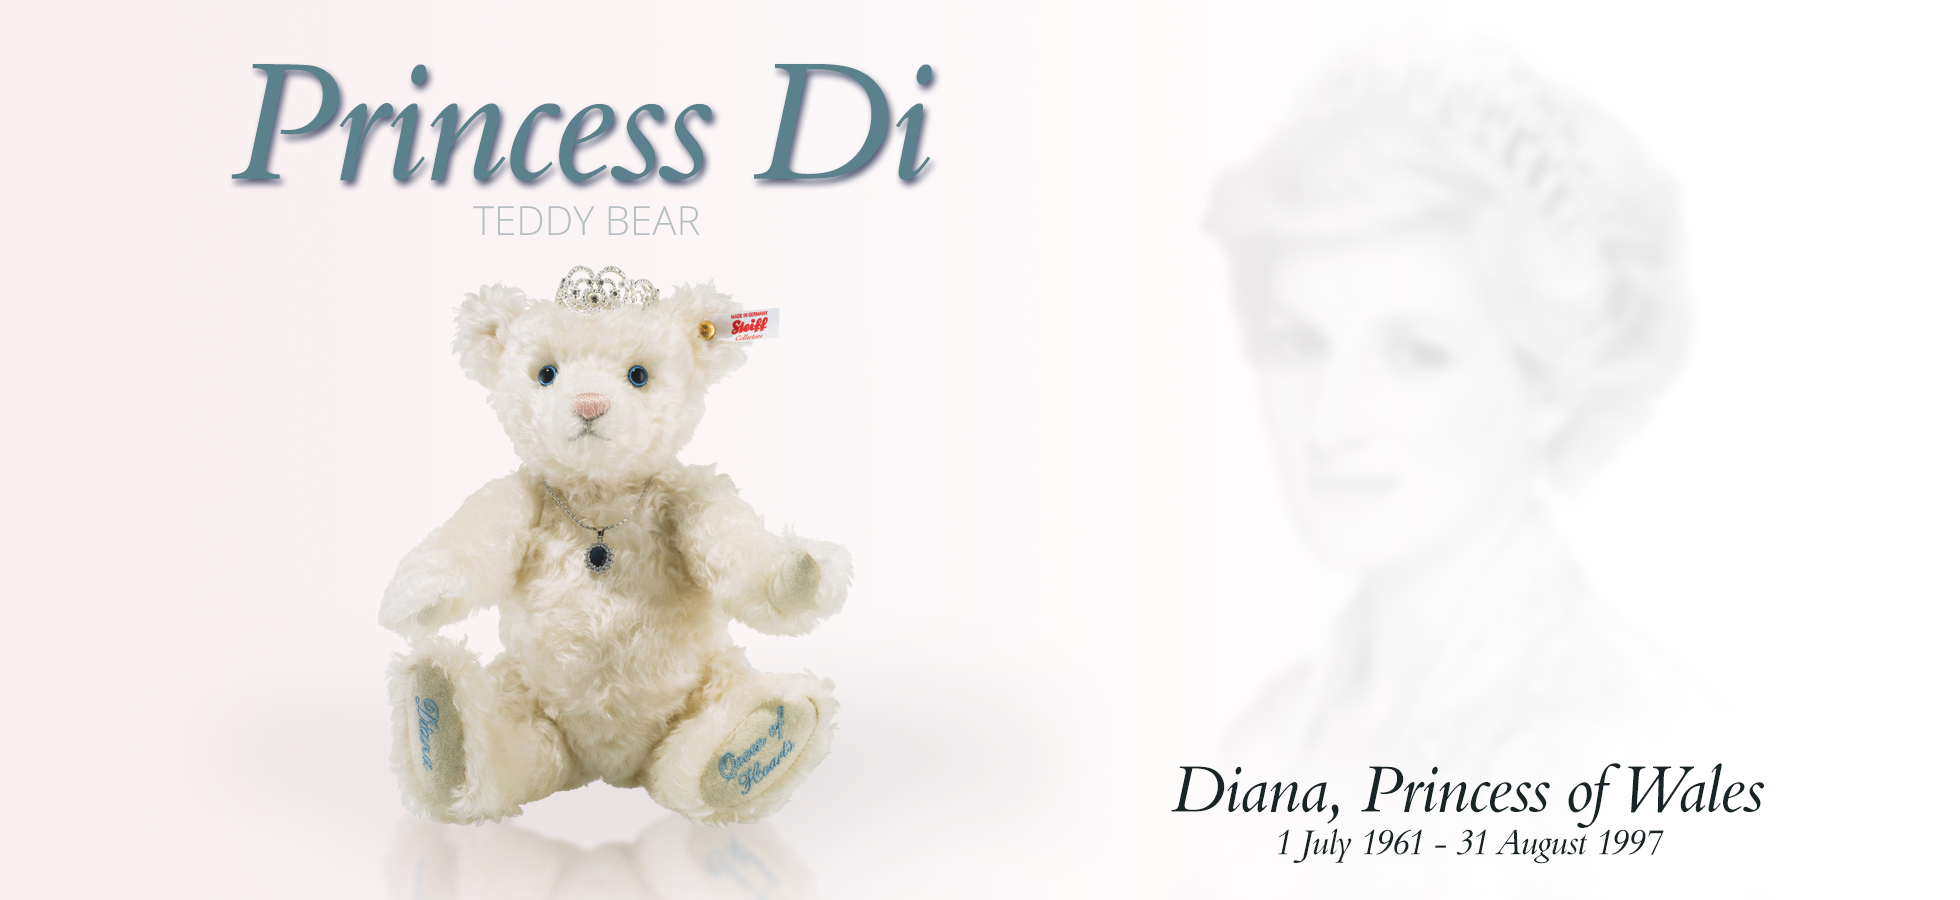 Shop for the Princess Di Teddy Bear Limited Edition